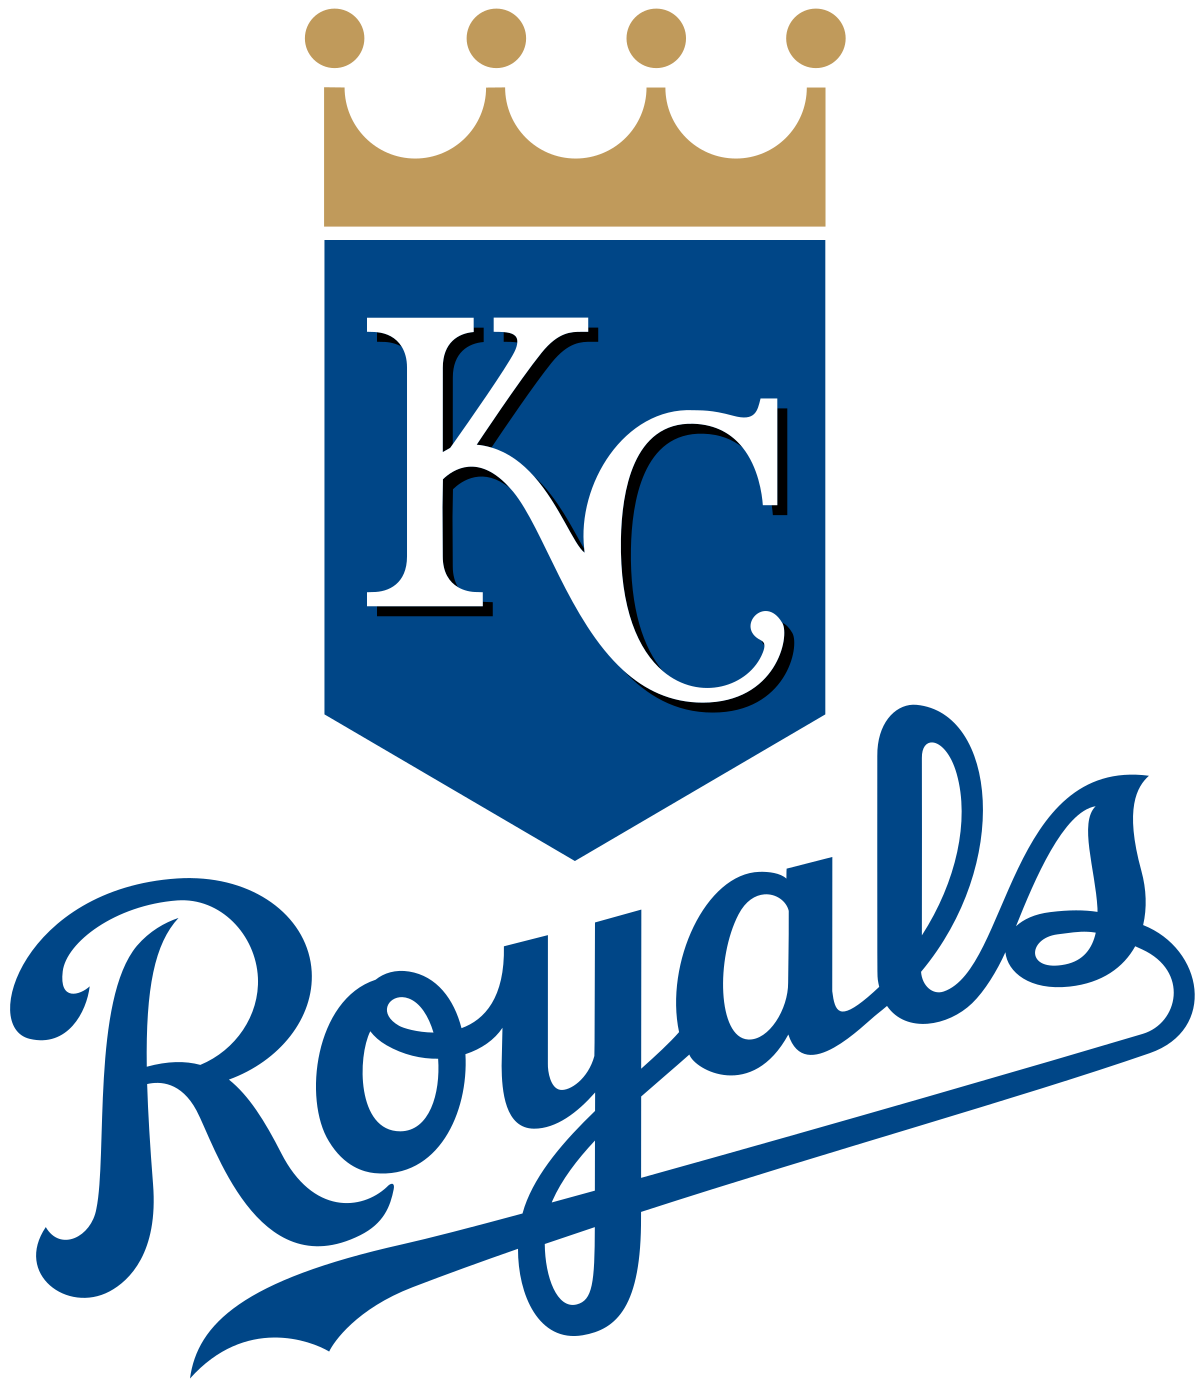 Kc royals crown clipart svg freeuse Kansas City Royals Clipart at GetDrawings.com | Free for personal ... svg freeuse